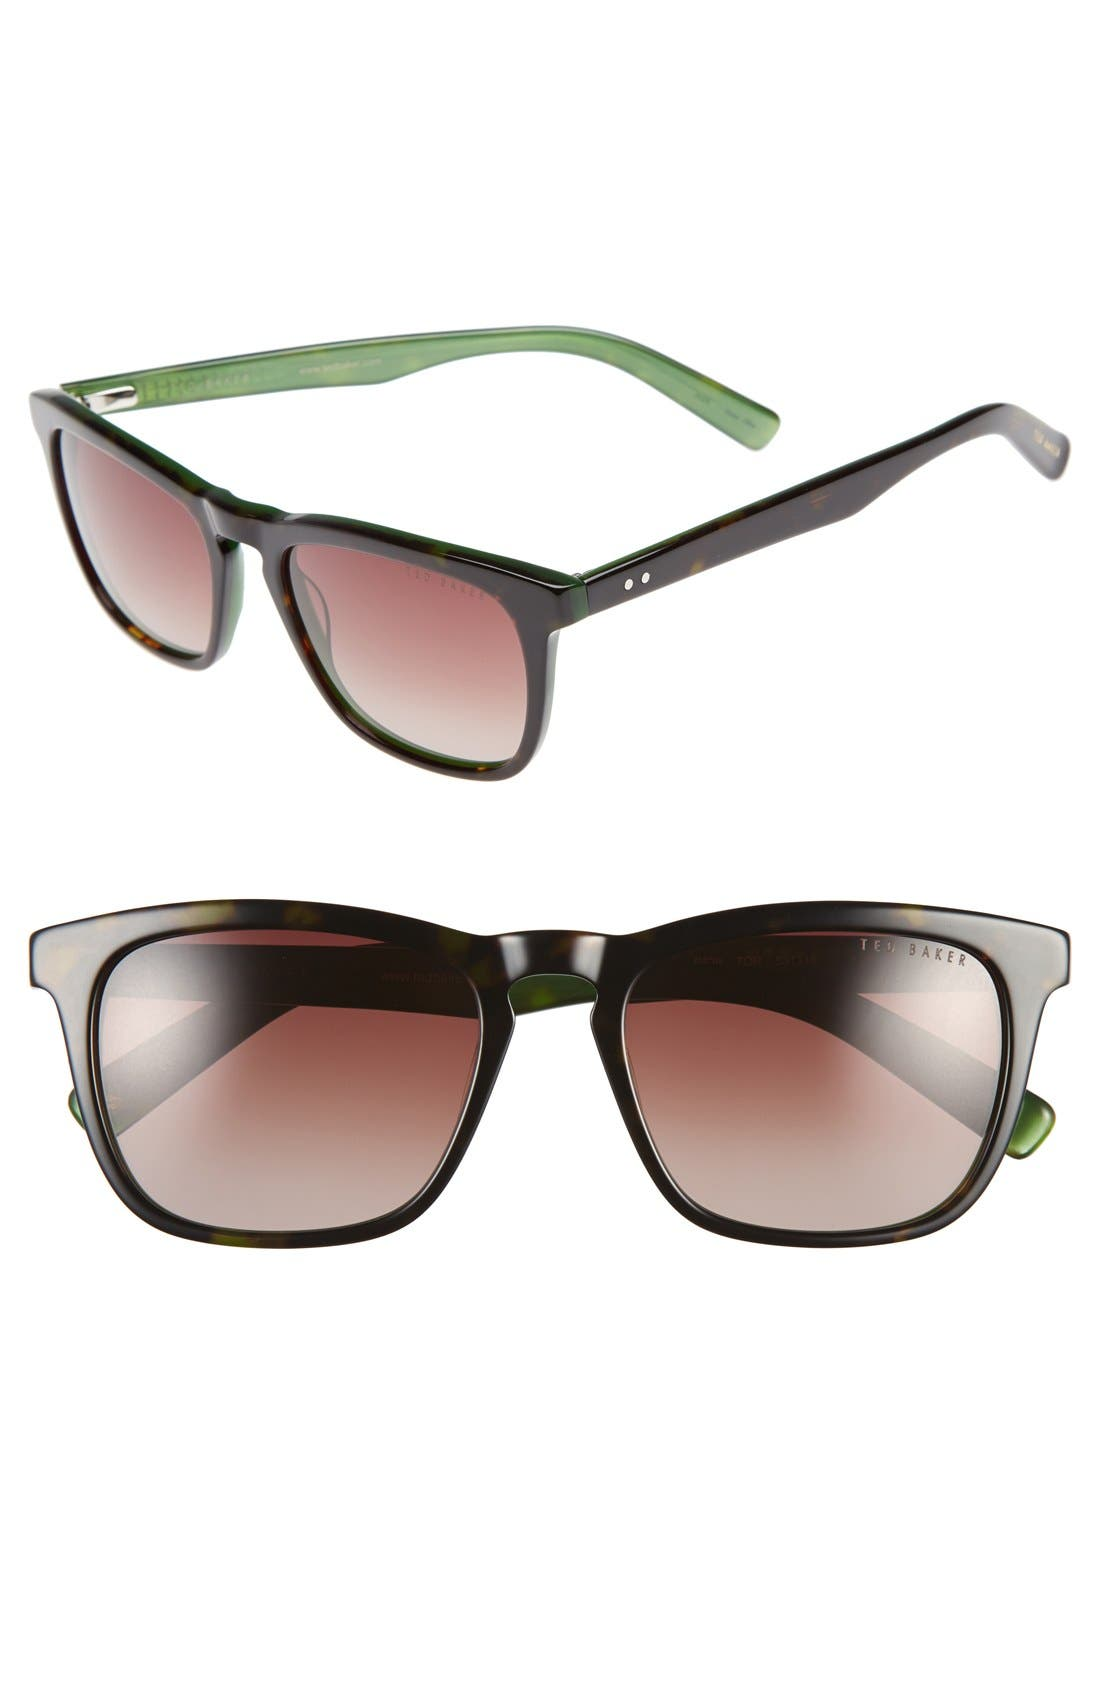 53mm Sunglasses,                             Main thumbnail 1, color,                             241